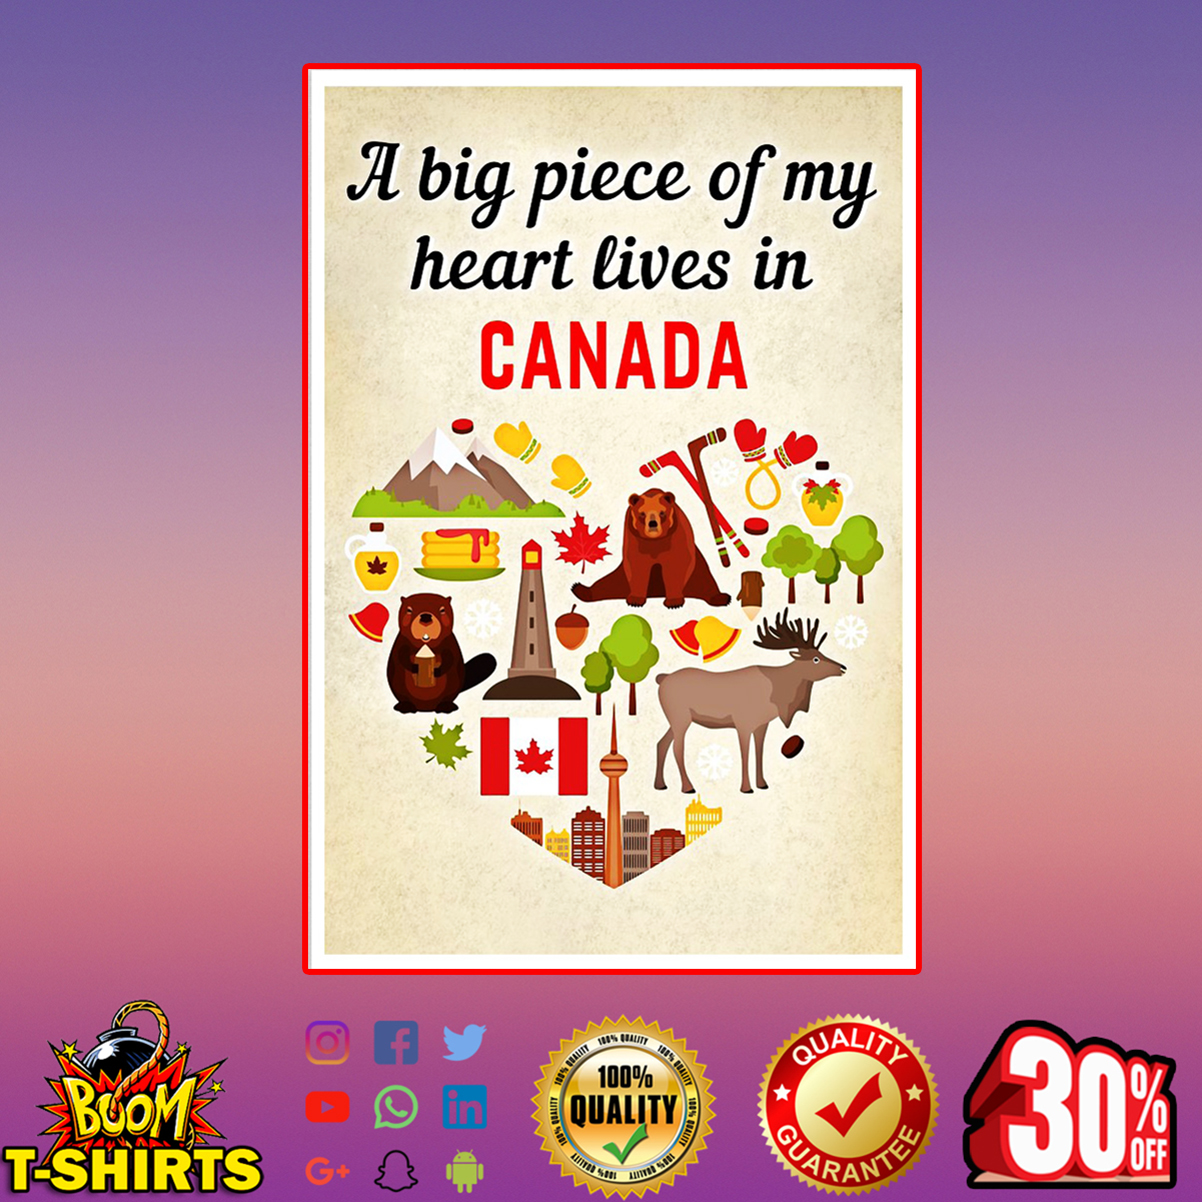 A big piece of my heart lives in Canada poster